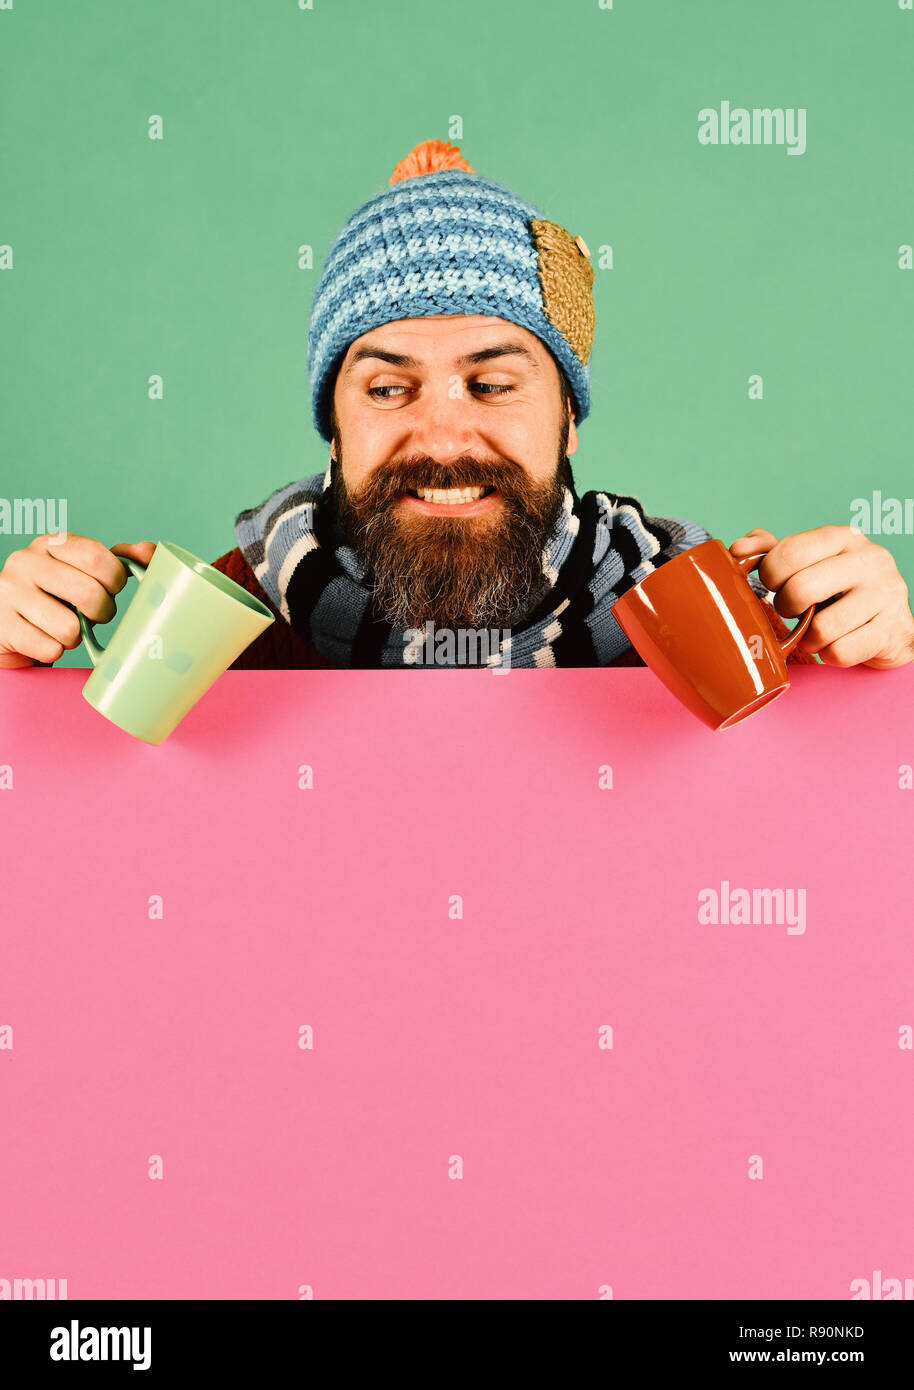 Man with beard holds brown and green cups of tea. Guy with tricky smile wears warm hat on green and pink background, copy space. Fall season and warm beverage time. Hot drinks and autumn concept - Stock Image